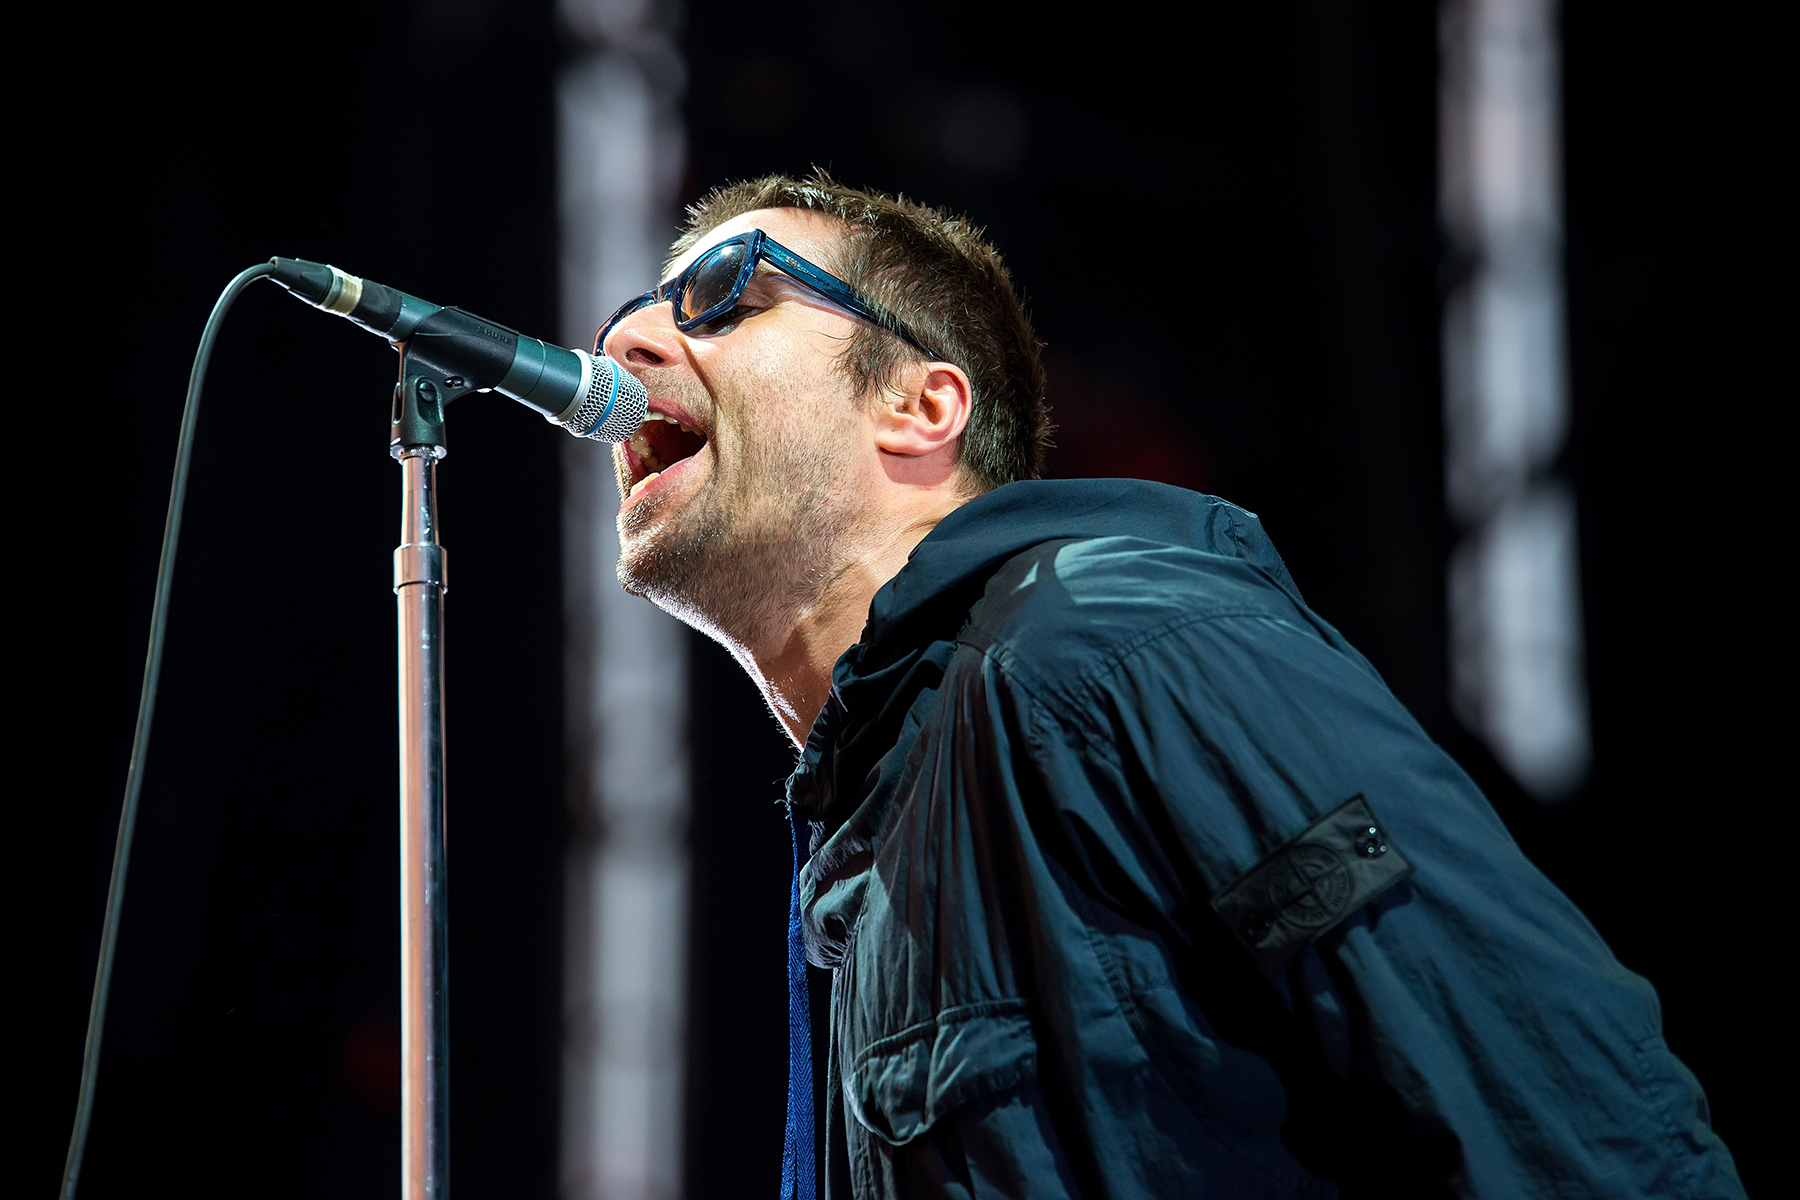 Oasis, one of the biggest bands in the world during the 1990s, are from Manchester